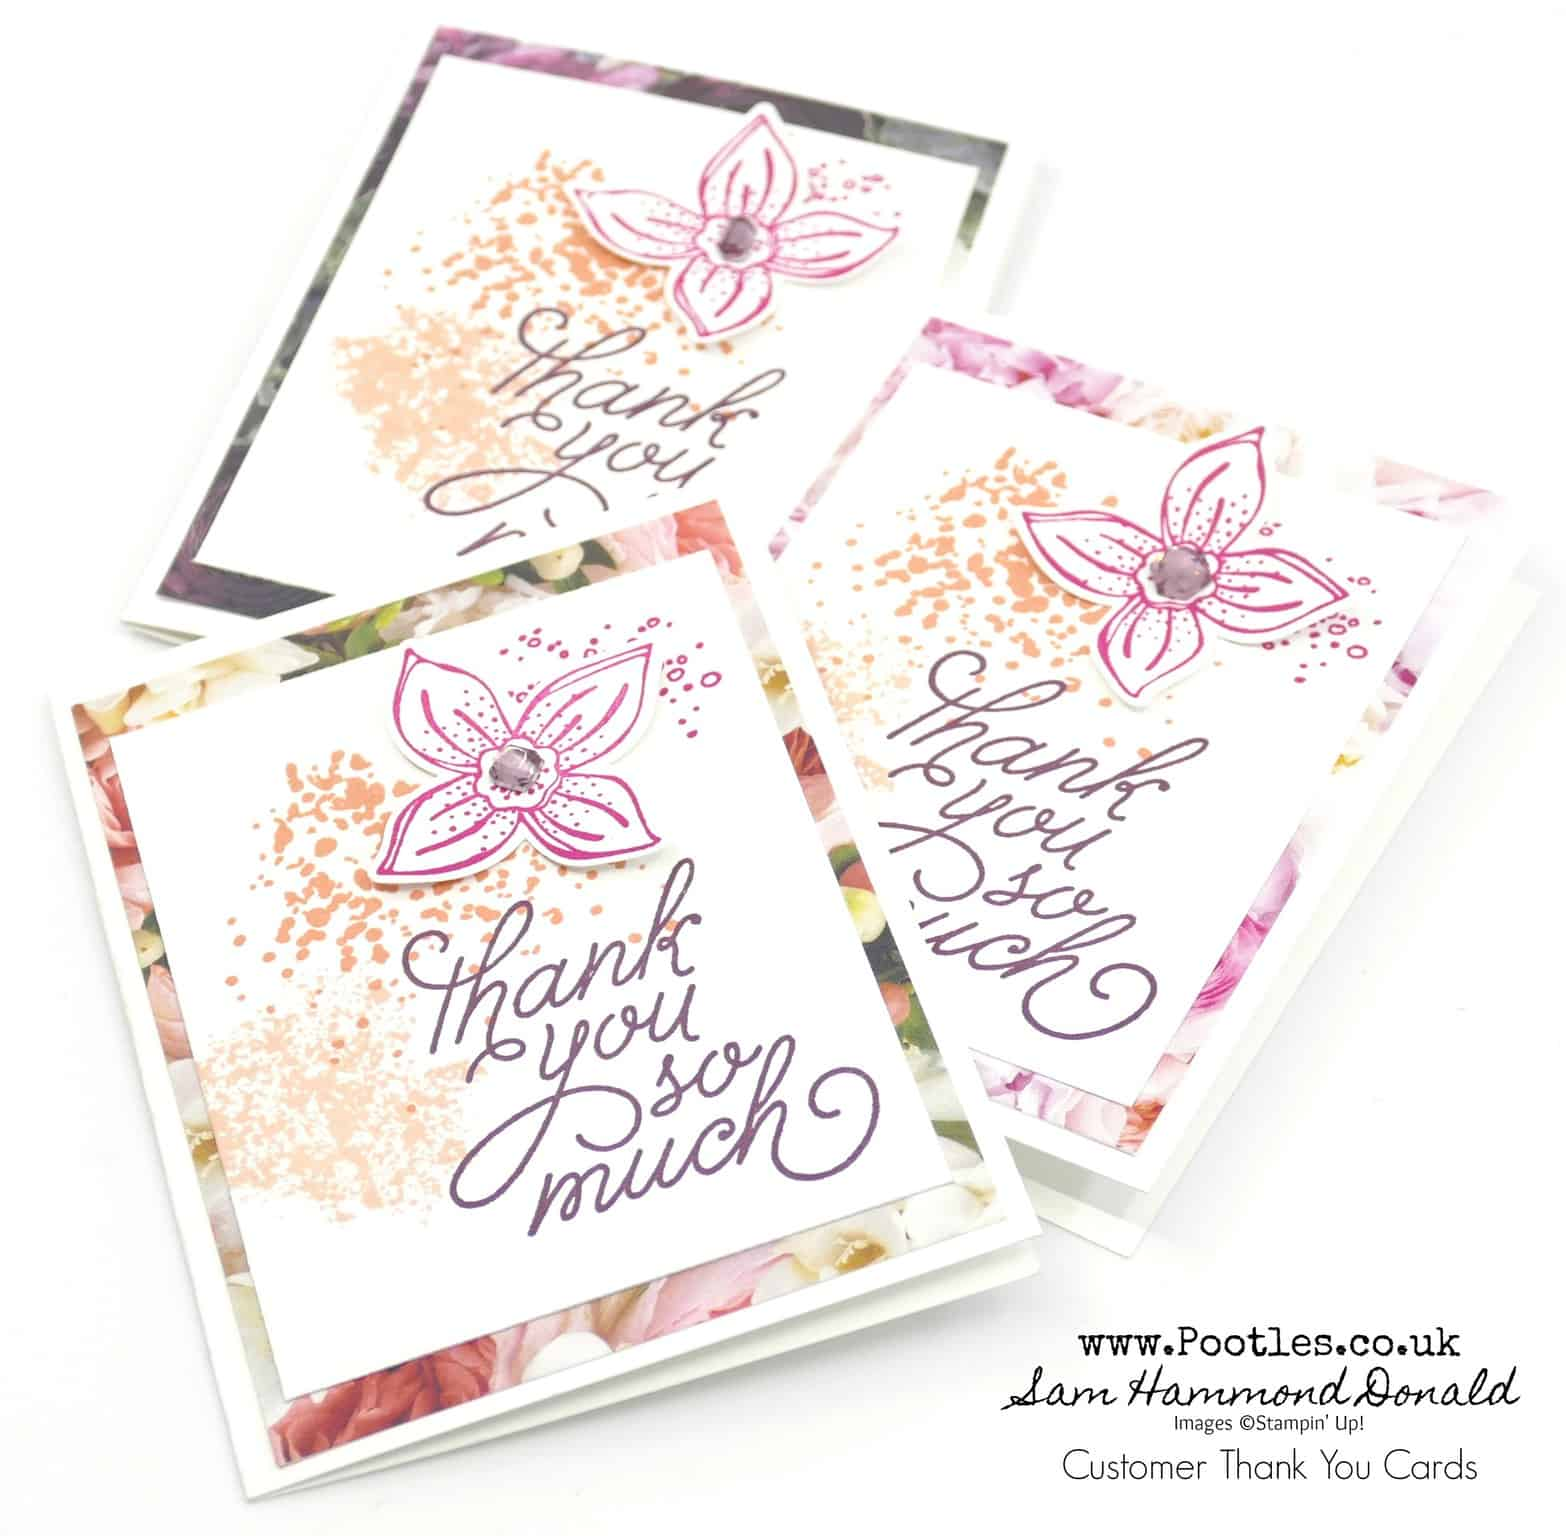 1 Stampin Up Demonstrator Pootles Customer Thank You Cards With